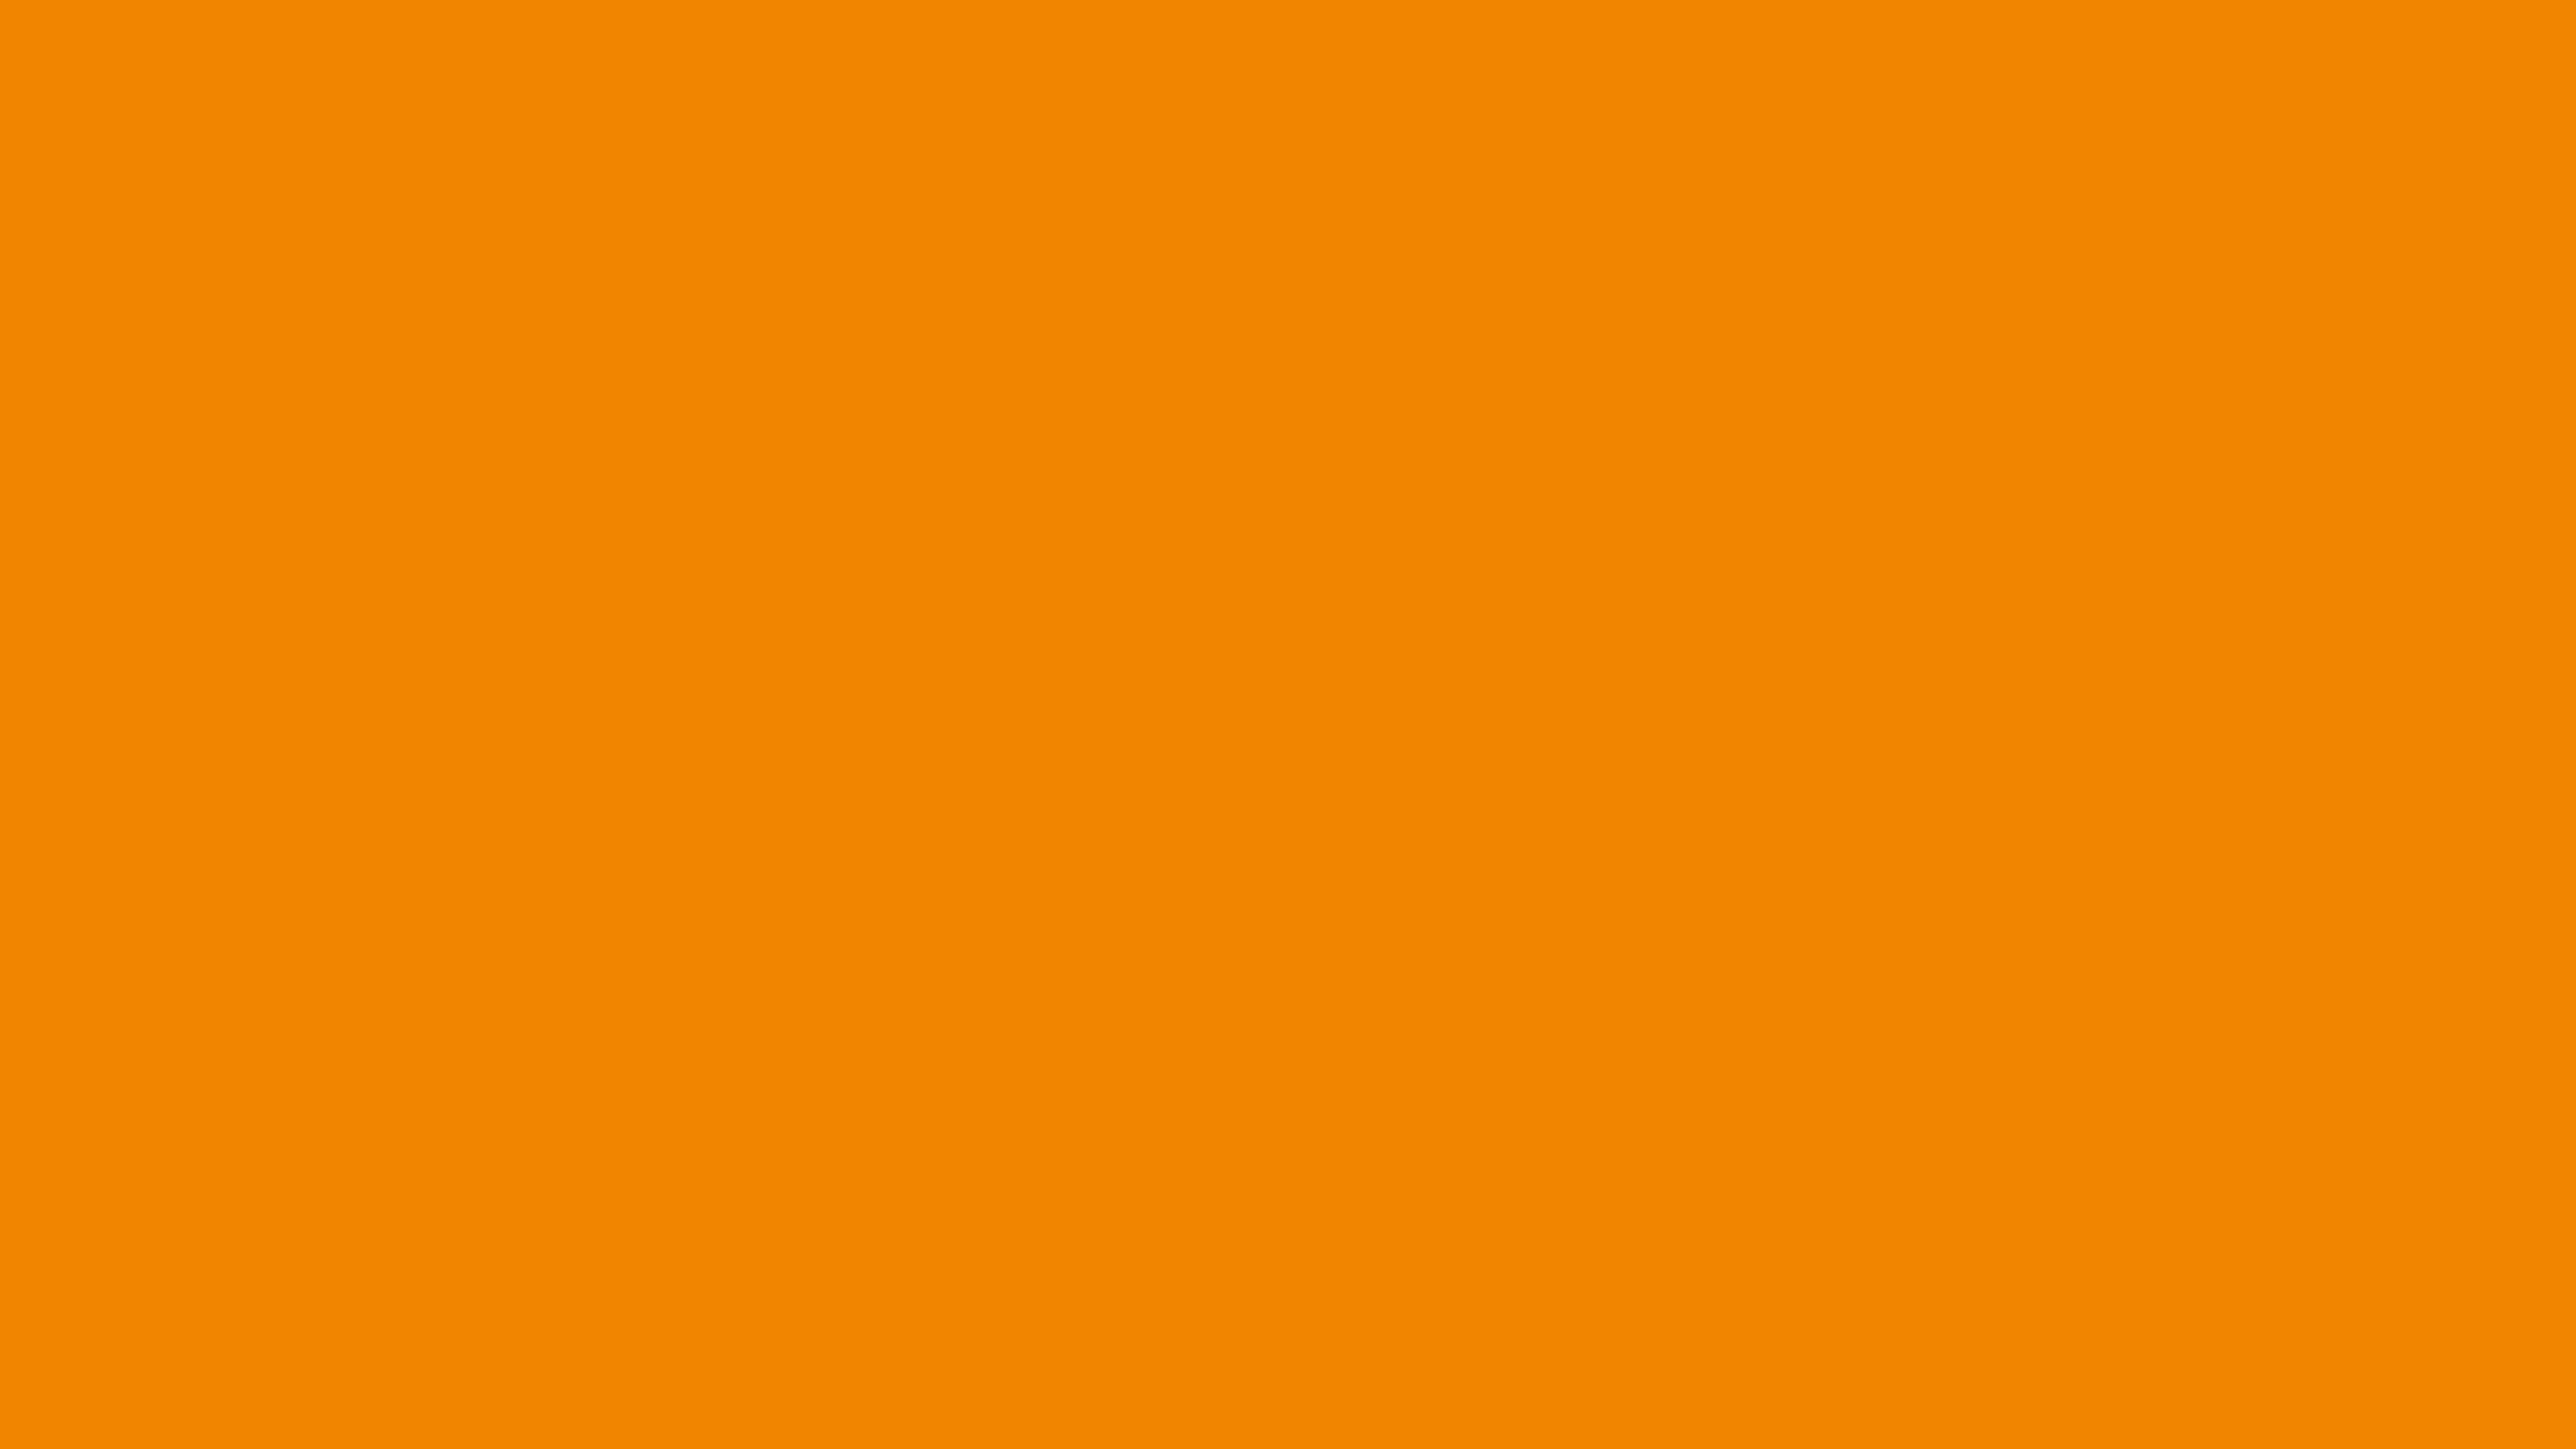 5120x2880 Tangerine Solid Color Background